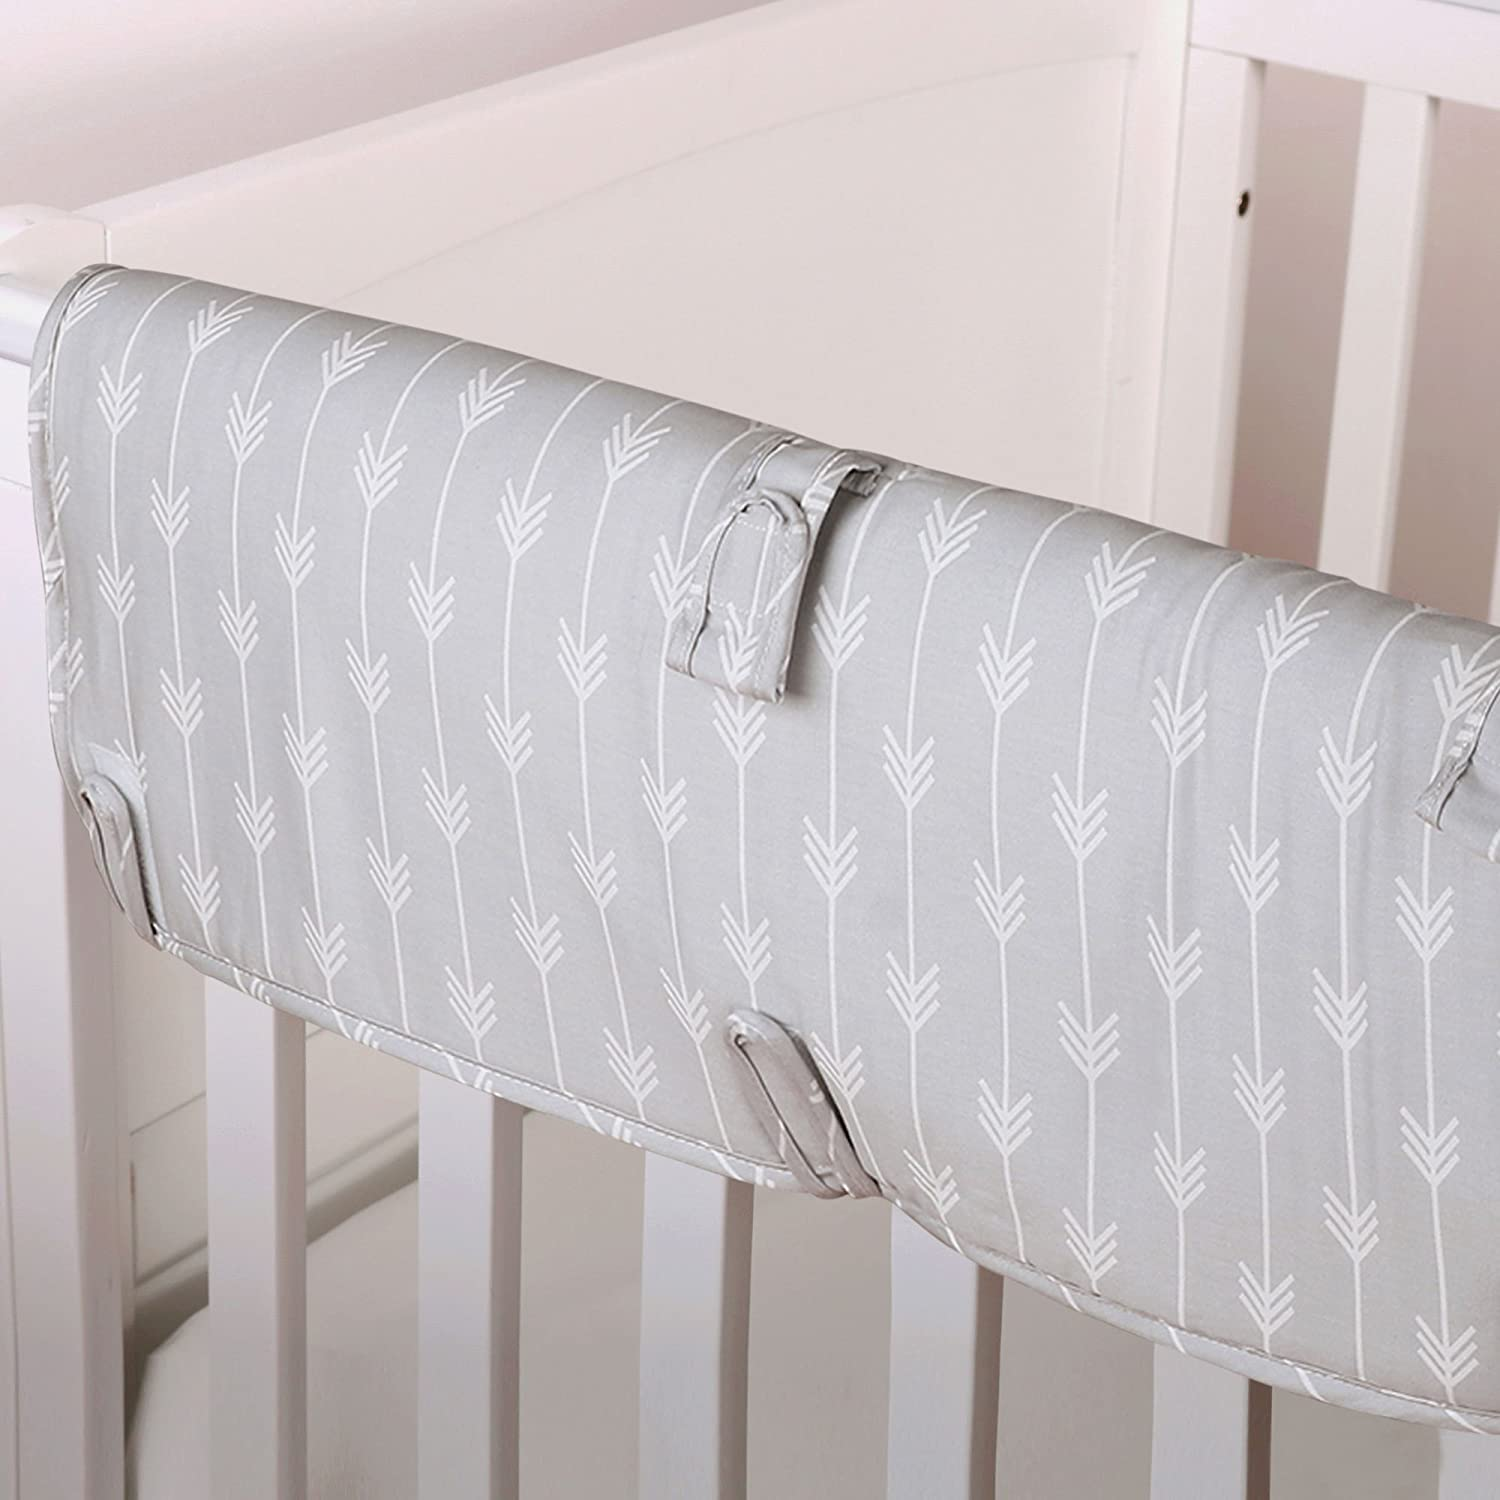 Grey Arrow Print 100/% Cotton Padded Crib Rail Guard by The Peanut Shell